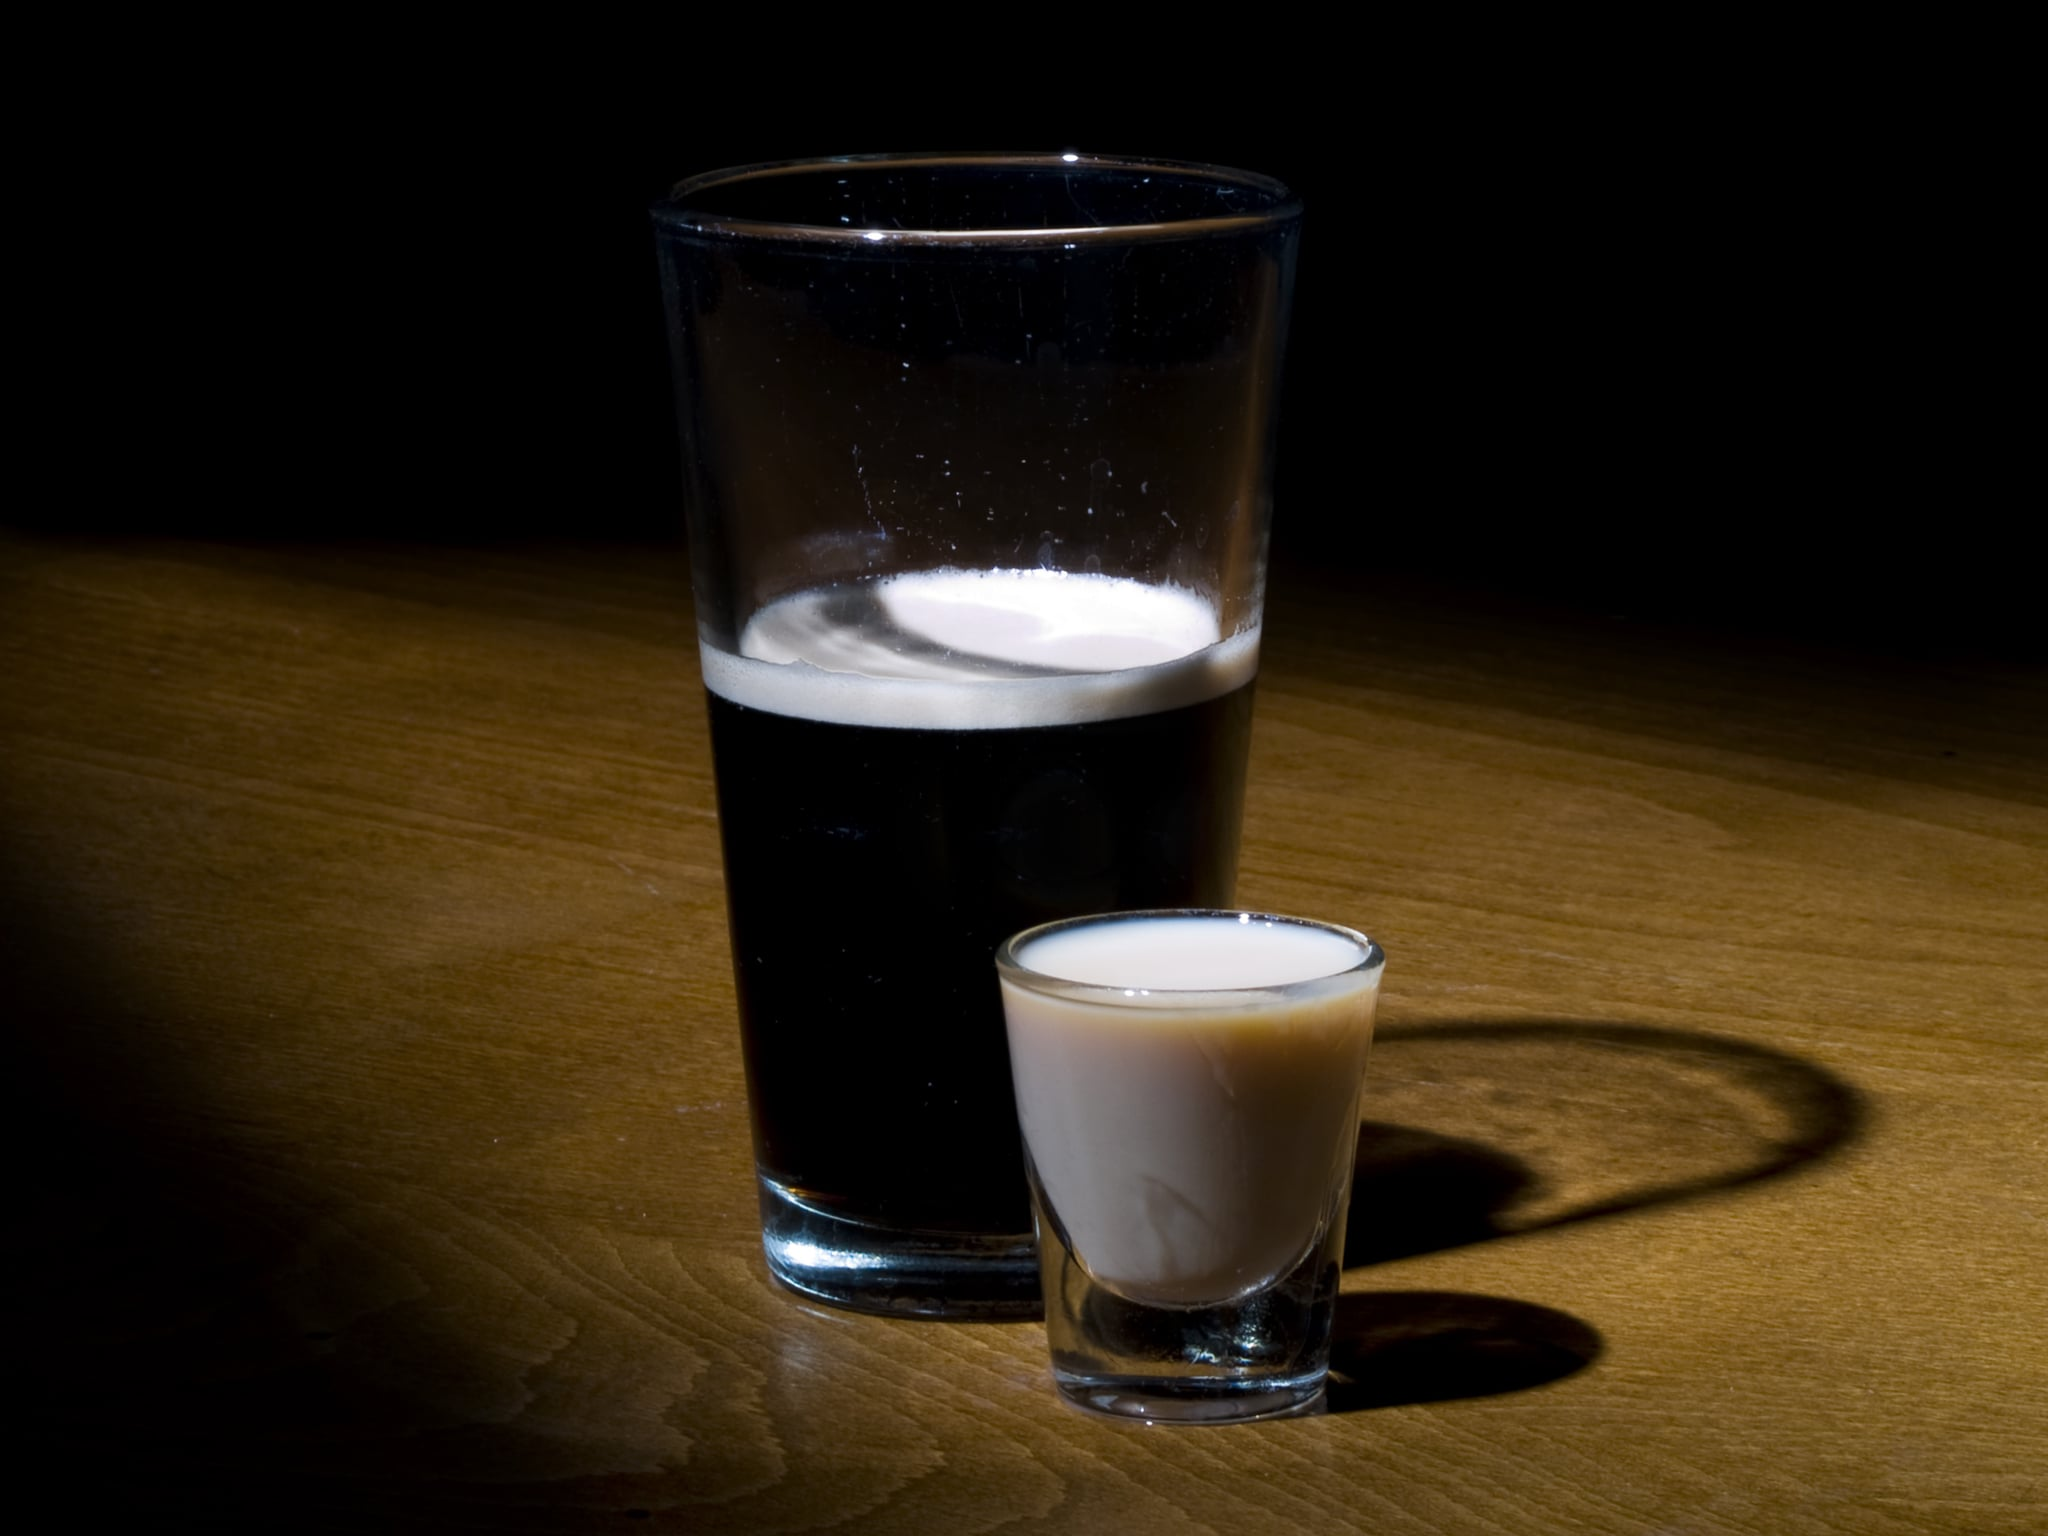 A popular Irish drink, the Irish Car Bomb.  A glass of Guinness beer and a shot of irish cream.